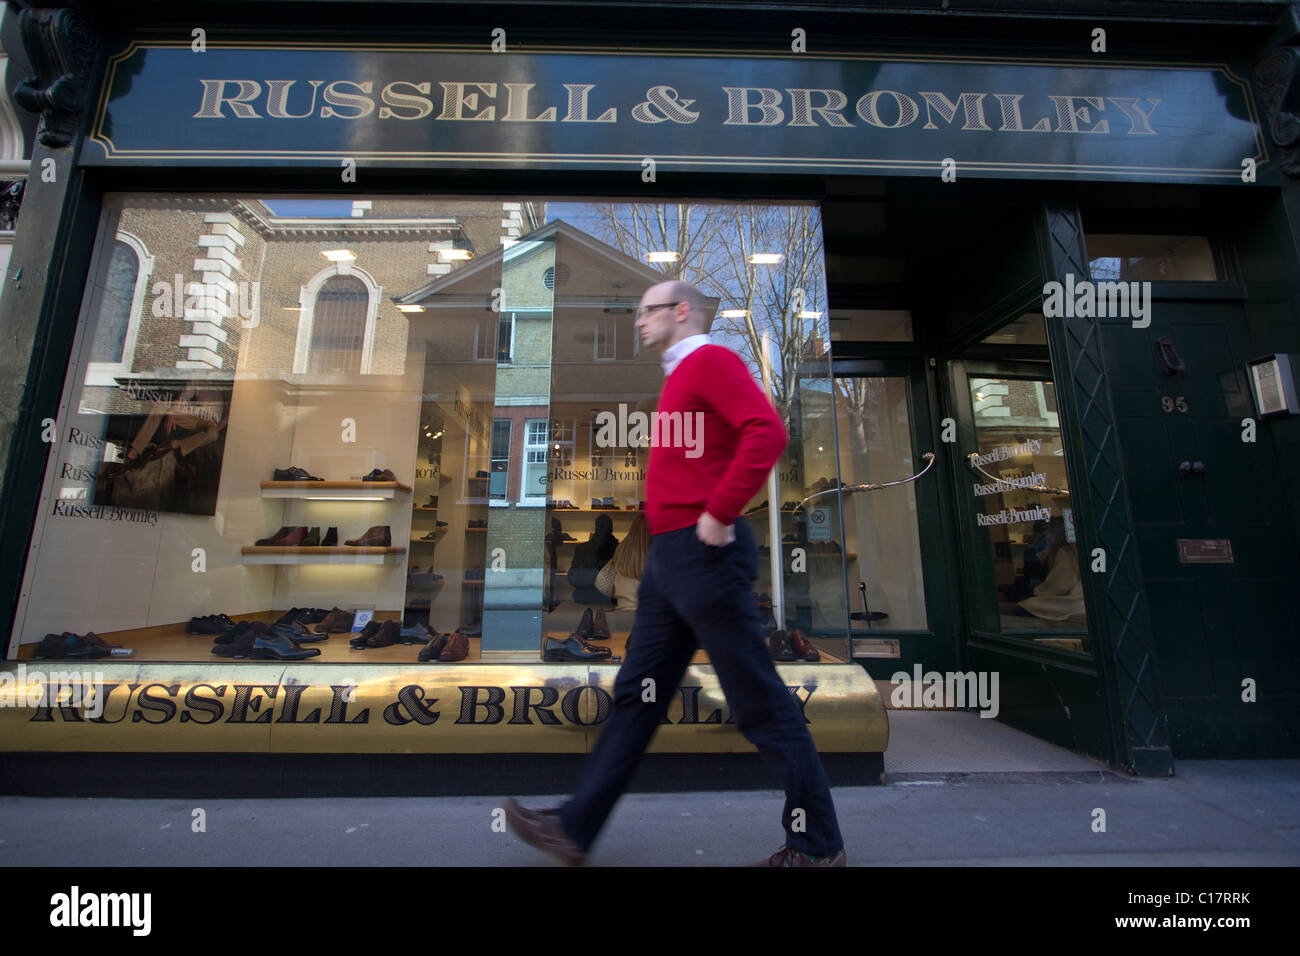 Russell and Bromley shoe retailer shop - Stock Image